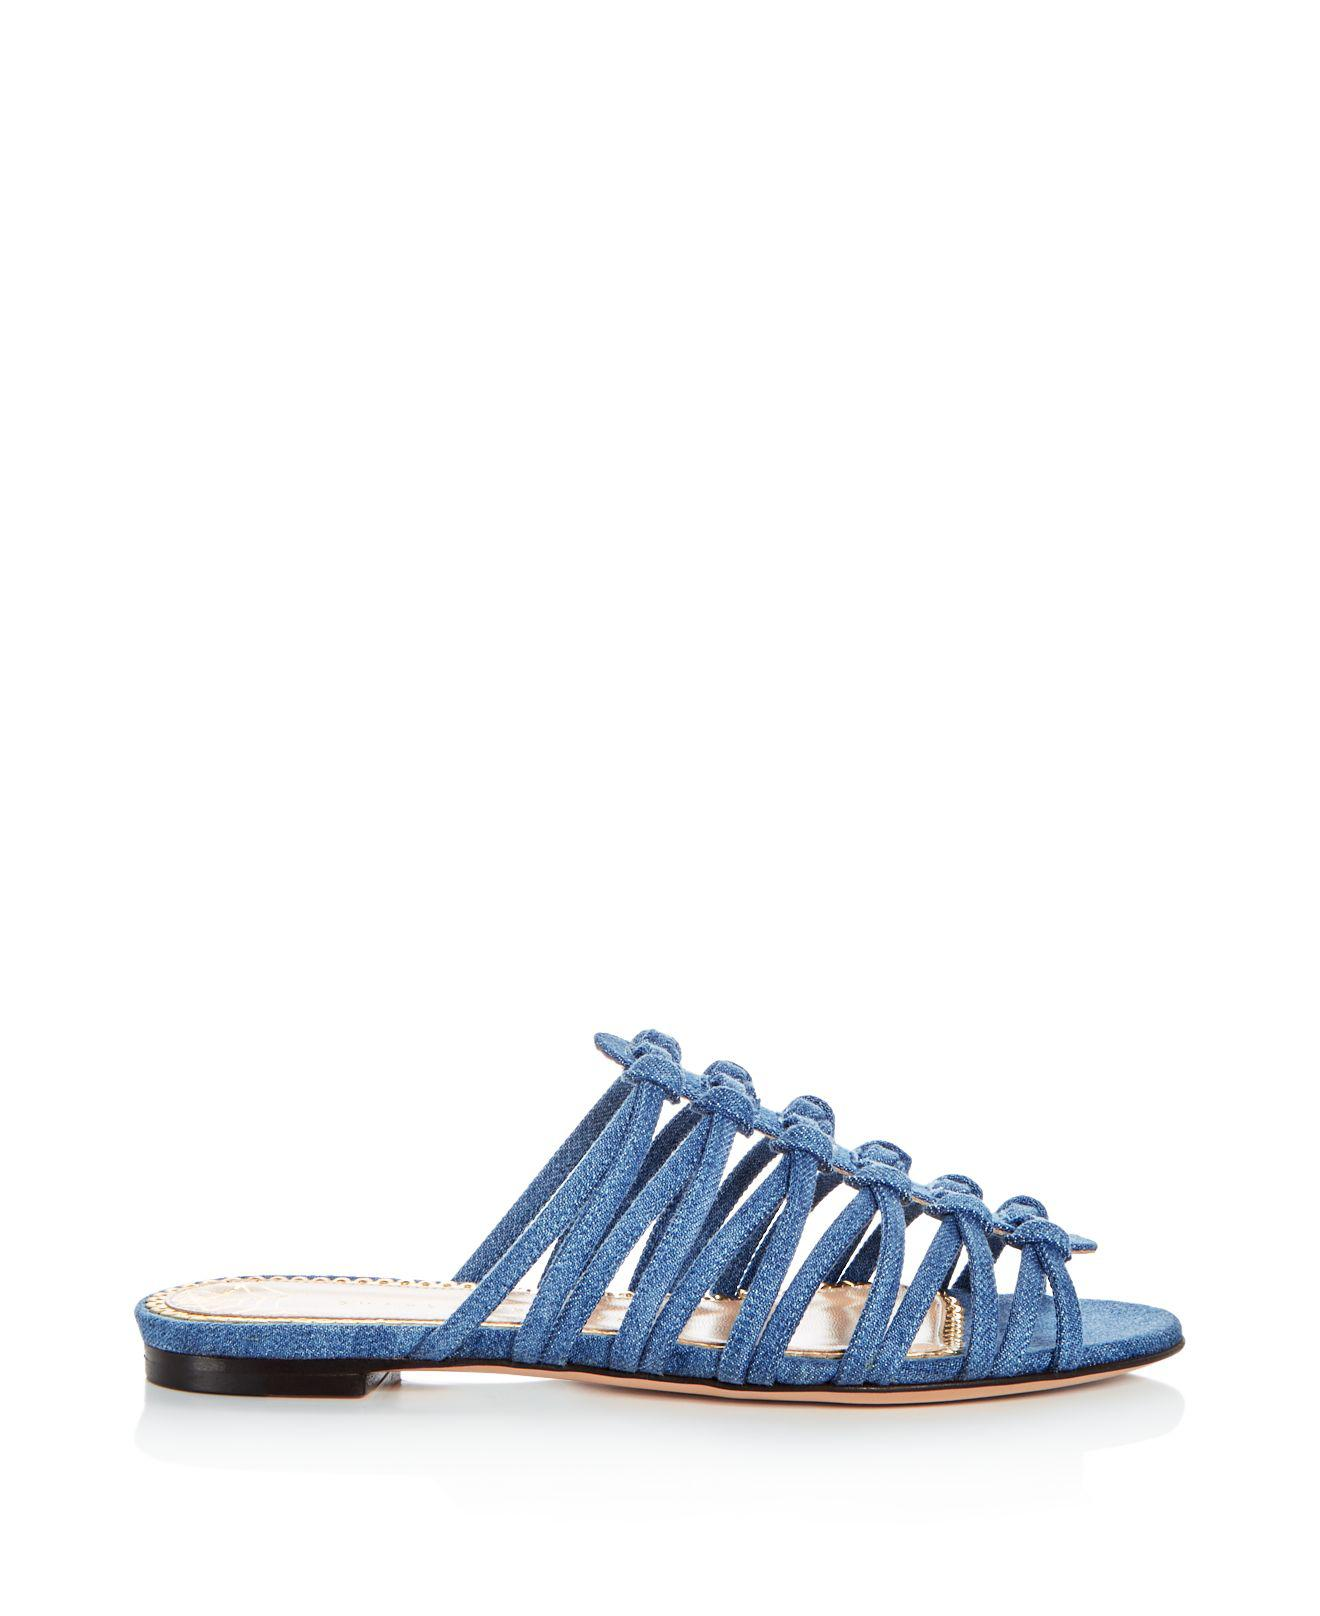 Charlotte Olympia Women's Bianca Knotted Denim Slide Sandals IeMYvbl